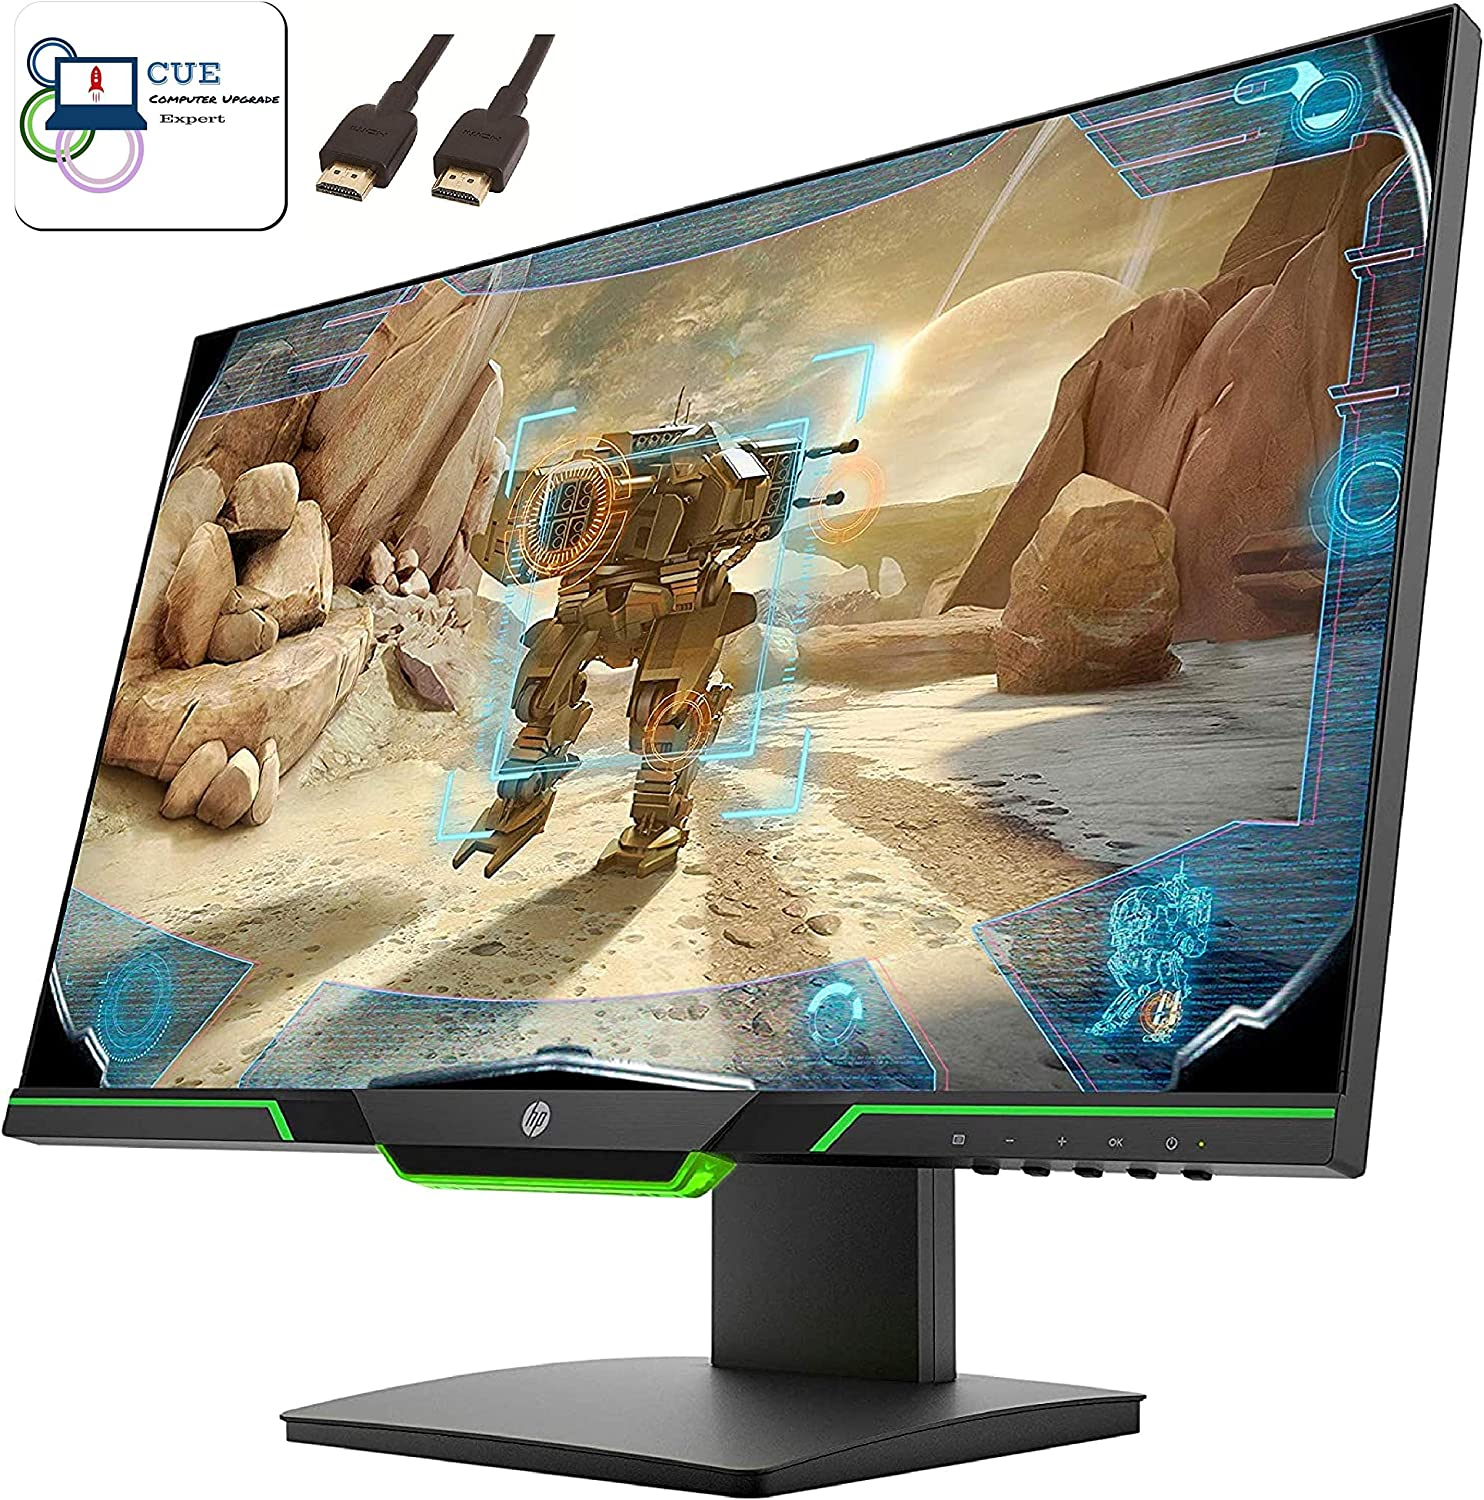 """HP 25x Gaming 24.5"""" Full HD Monitor, 144hz, 1ms Response, HDMI and DisplayPort inputs, 1000:1 Contrast Ratio, Gray/Green + CUE Accessories"""